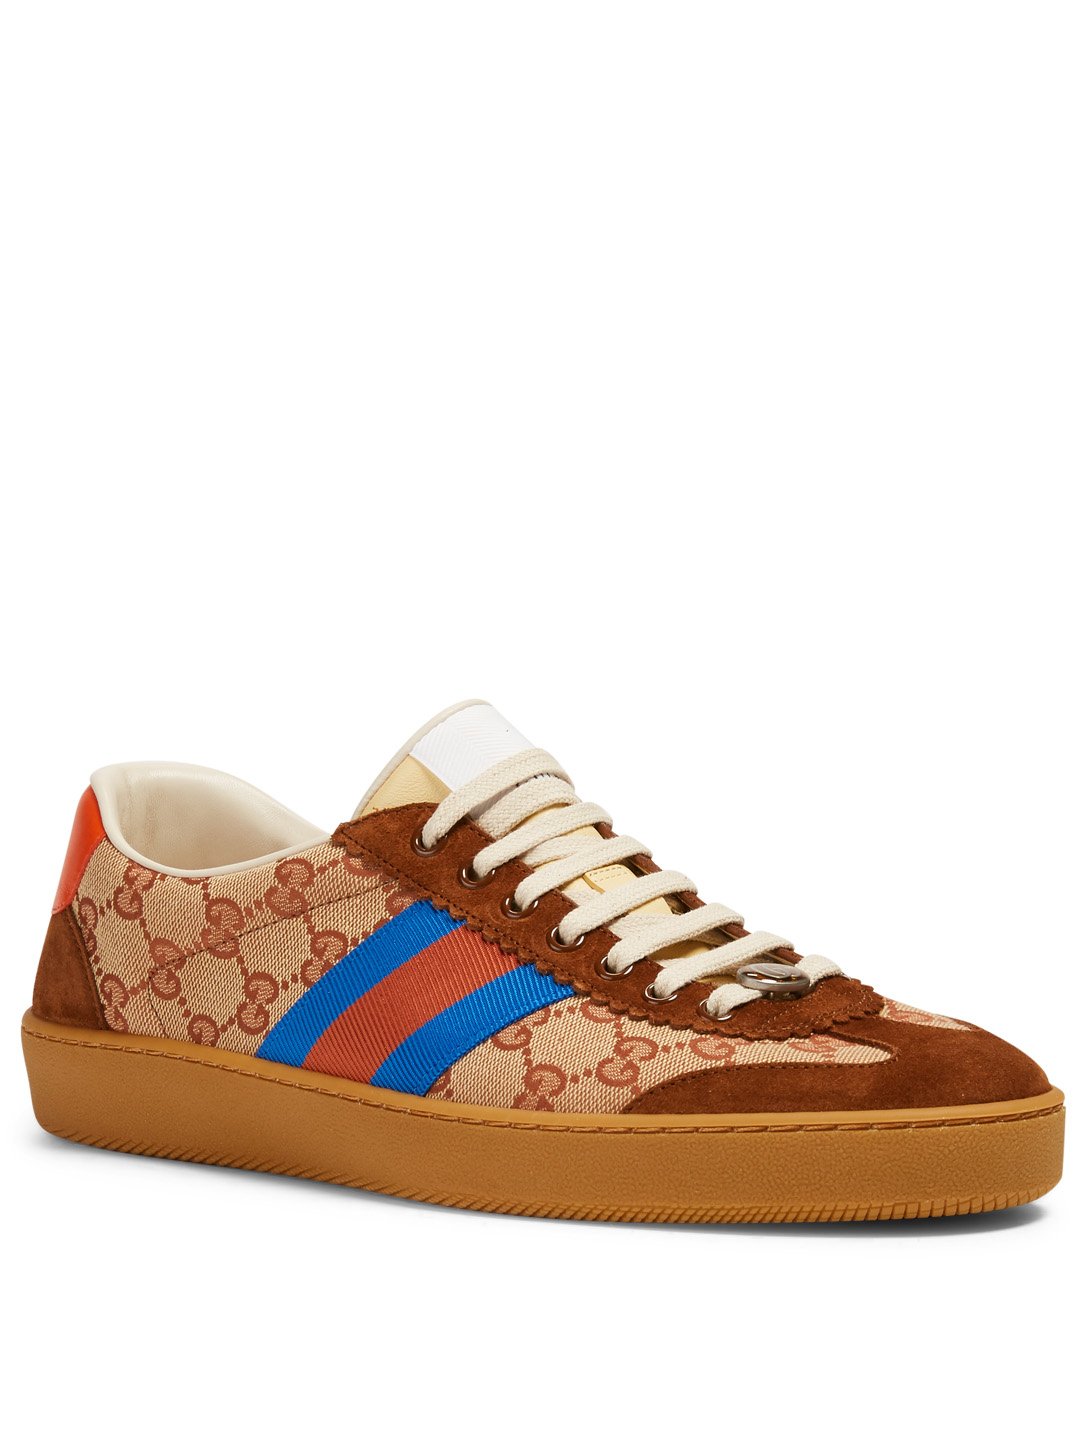 0544b844d44256 ... GUCCI G74 Original GG Canvas Sneakers With Web Men s Neutral ...